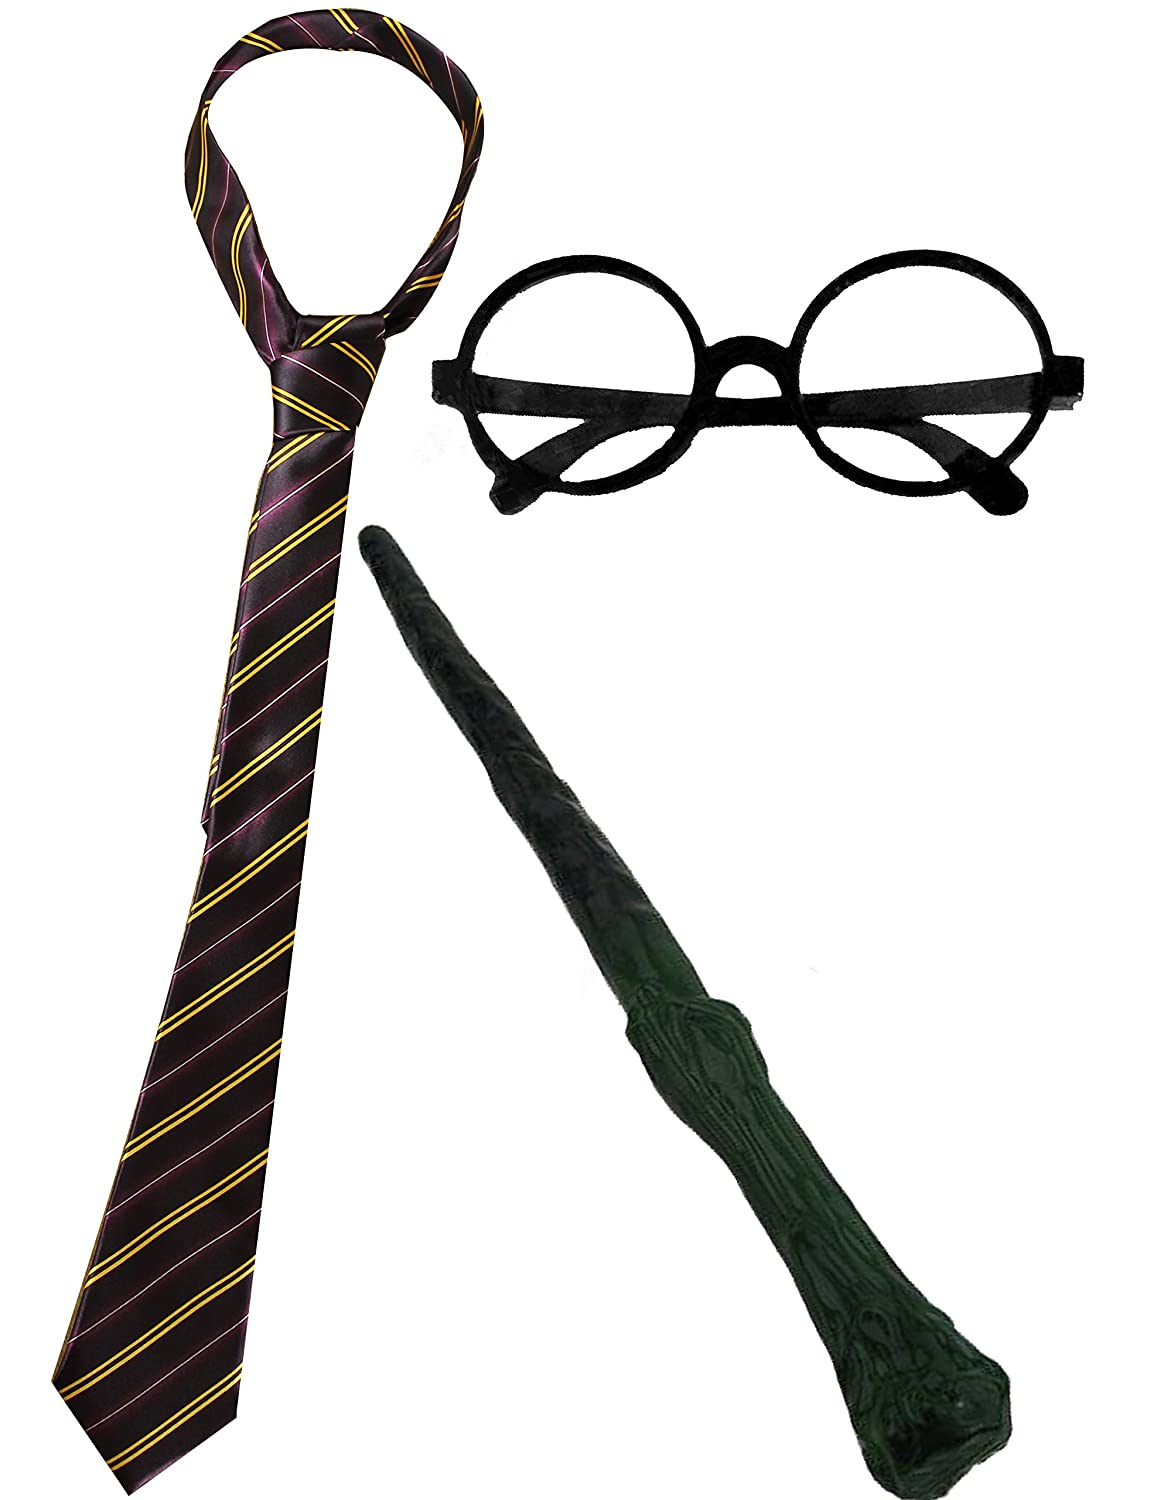 WIZARD SET FANCY DRESS ACCESSORY COSTUME SCHOOL BOY TIE + ROUND WIZARD GLASSES + PLASTIC BRANCH WAND MAGICIAN OUTFIT ILFD-WIZ-GTBRANCHWAND